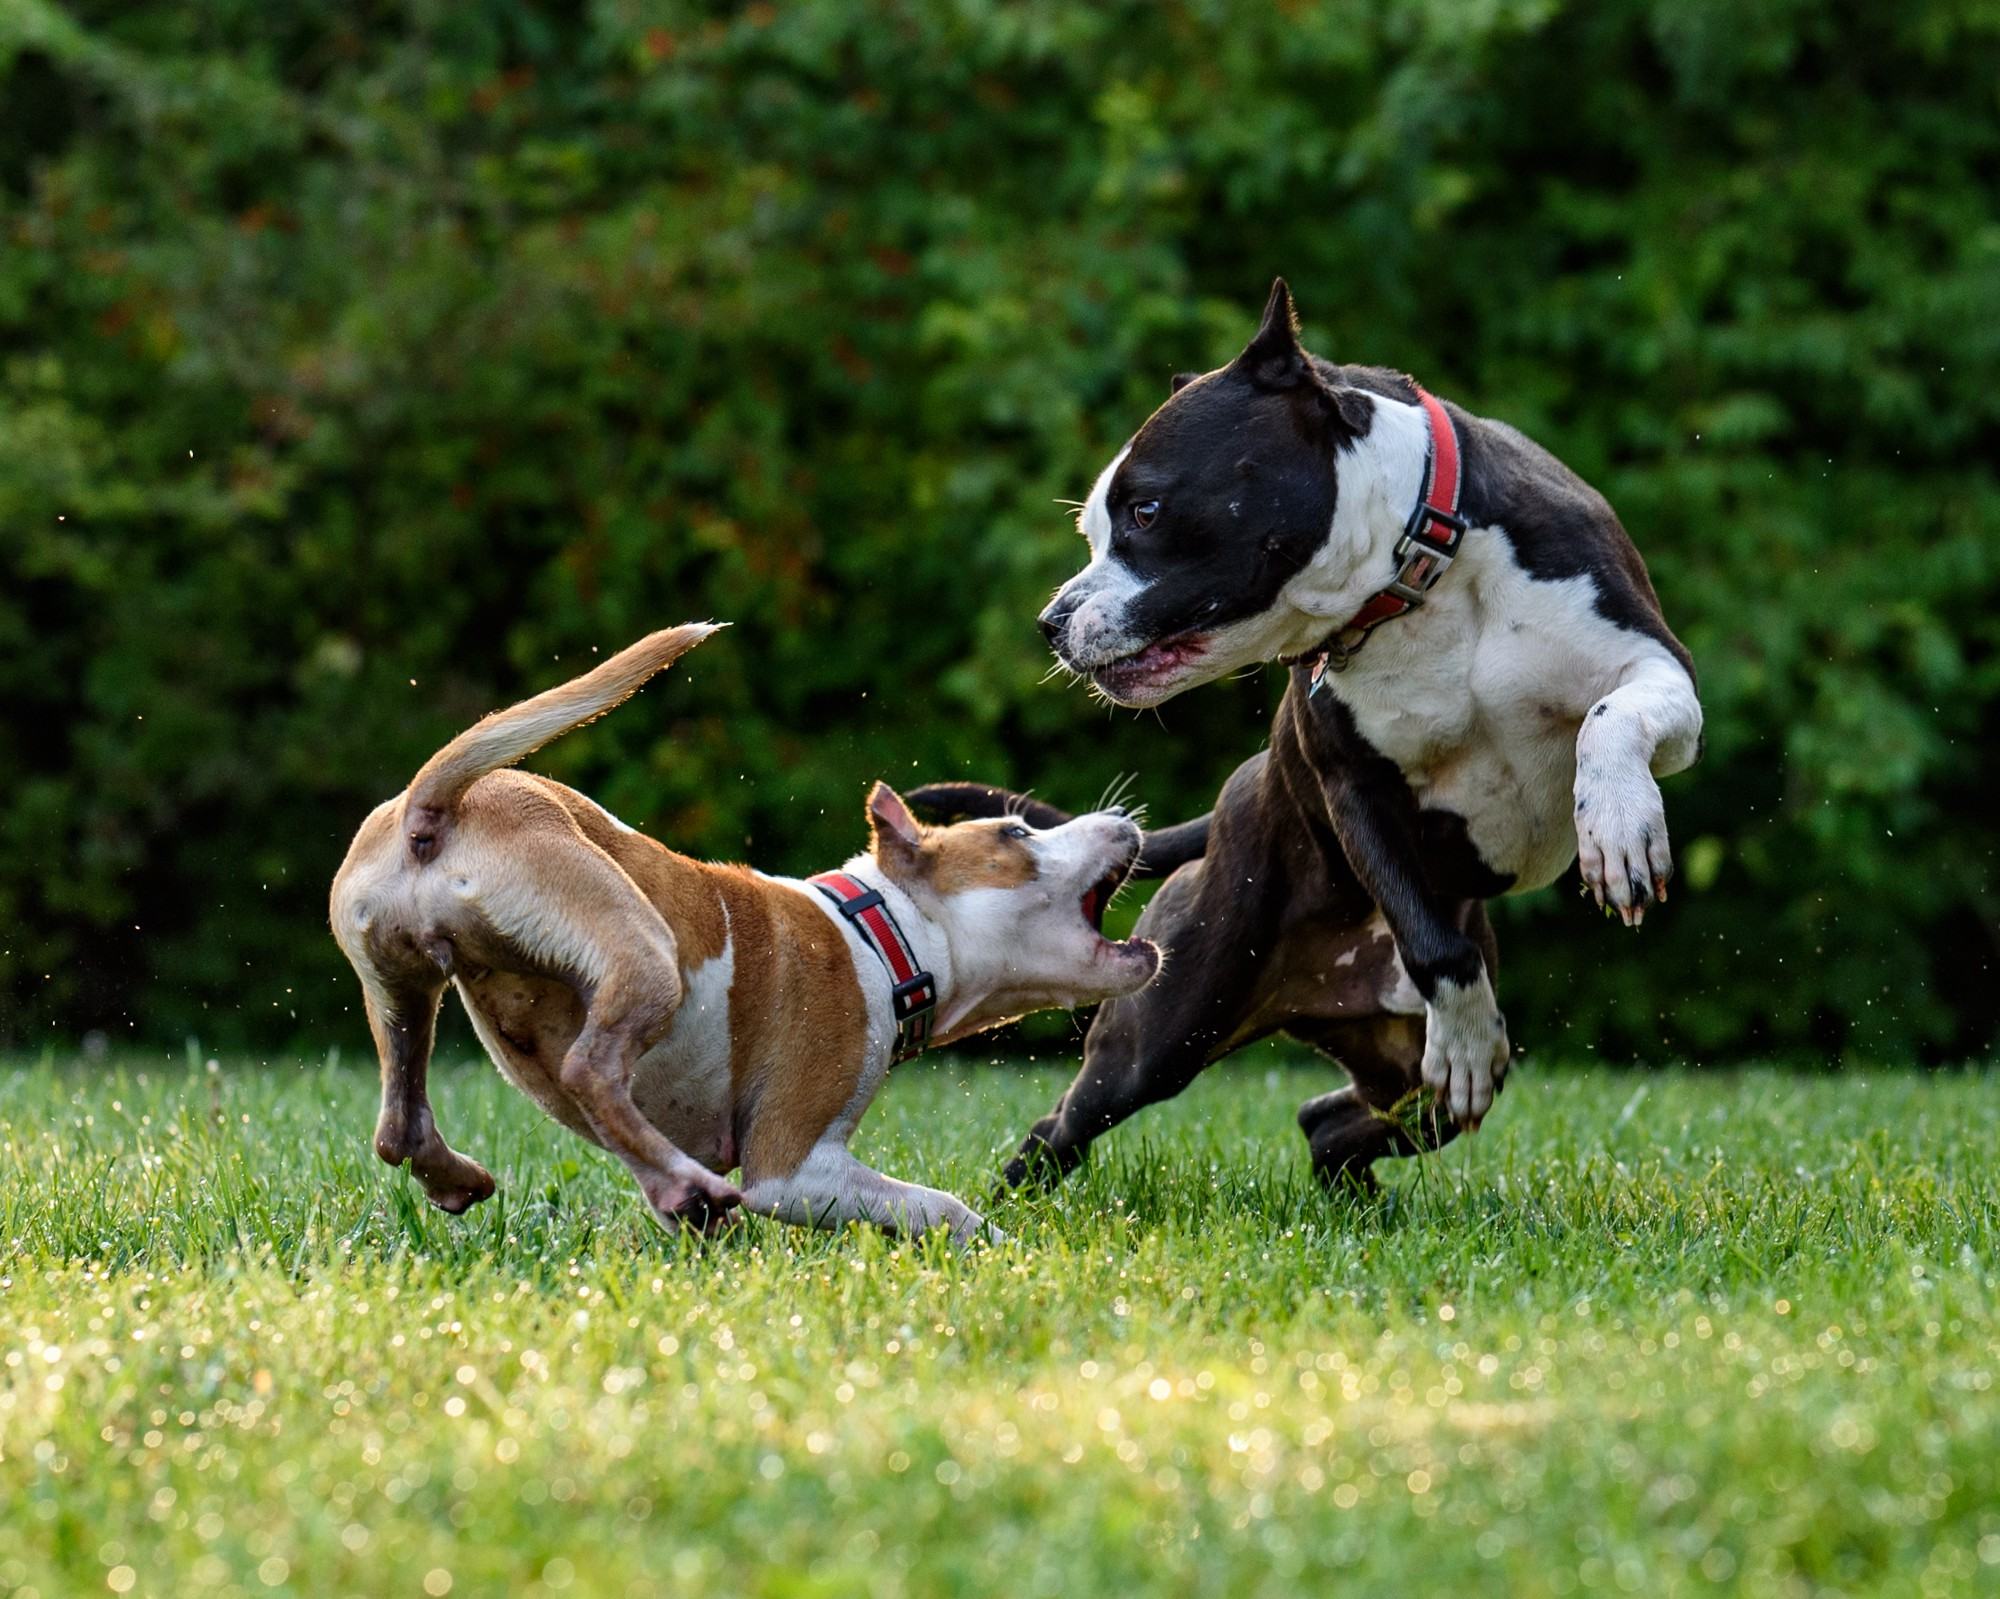 Two small muscular dogs, one brown and white, one black and white with matching red collars, chasing and biting at one another in the grass